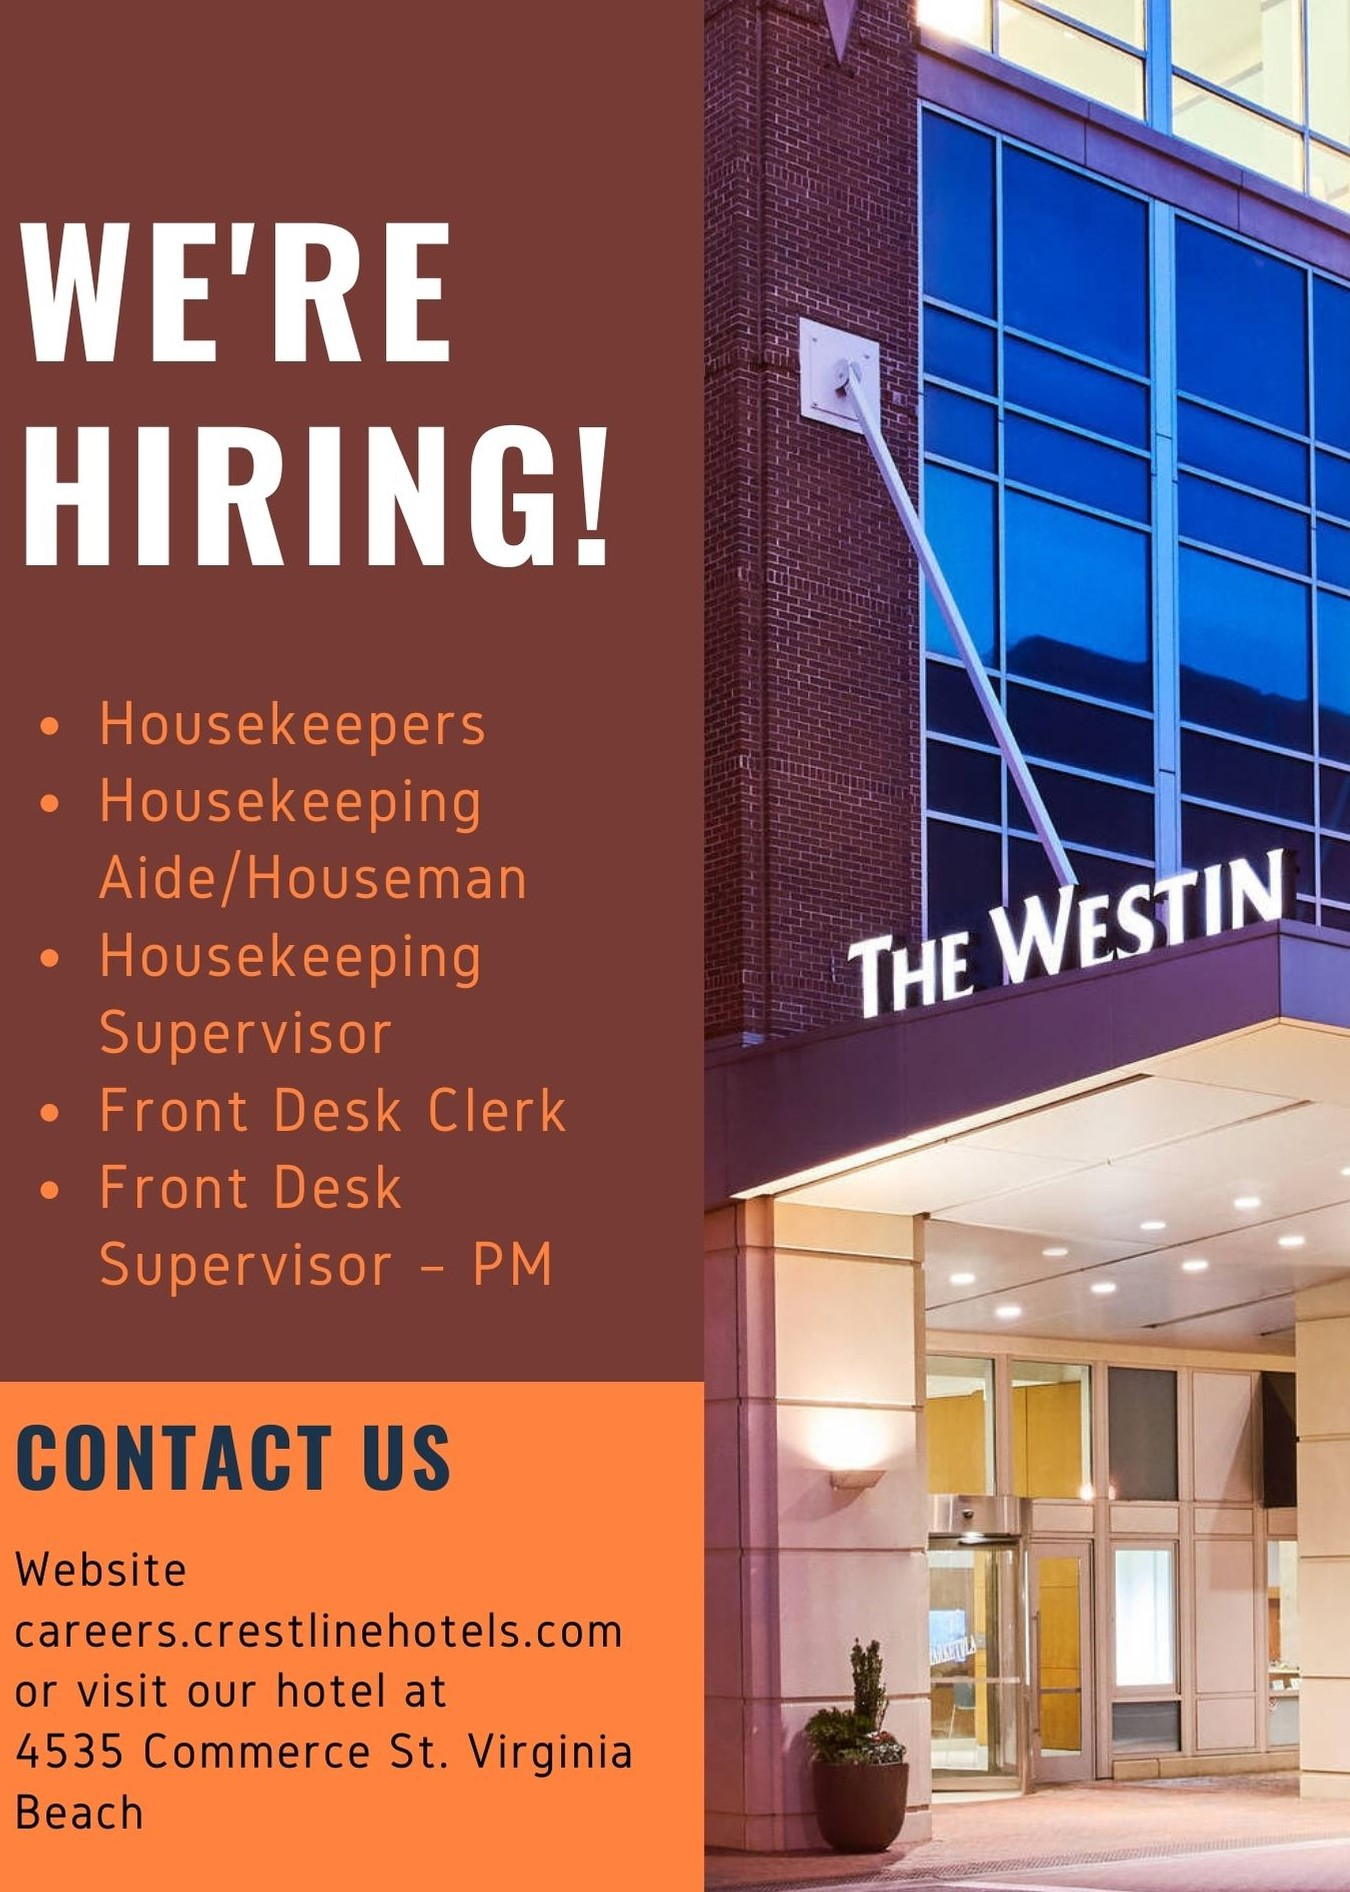 WESTIN VIRGINIA BEACH TOWN CENTER - OPEN POSITIONS!